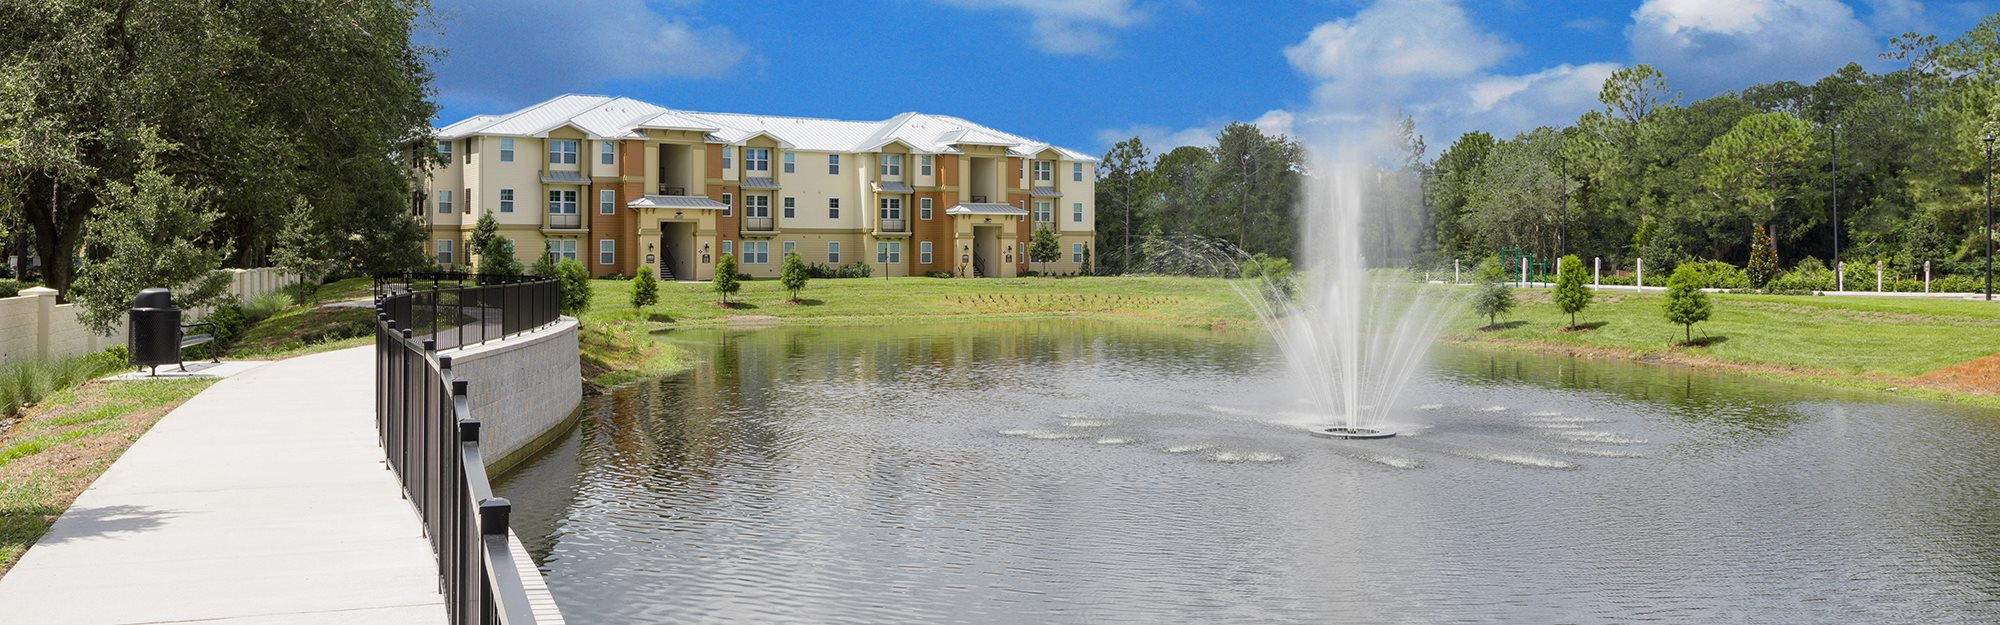 Westwood Park Apartments for rent in Orlando, FL. Make this community your new home or visit other Concord Rents communities at ConcordRents.com. Lake view